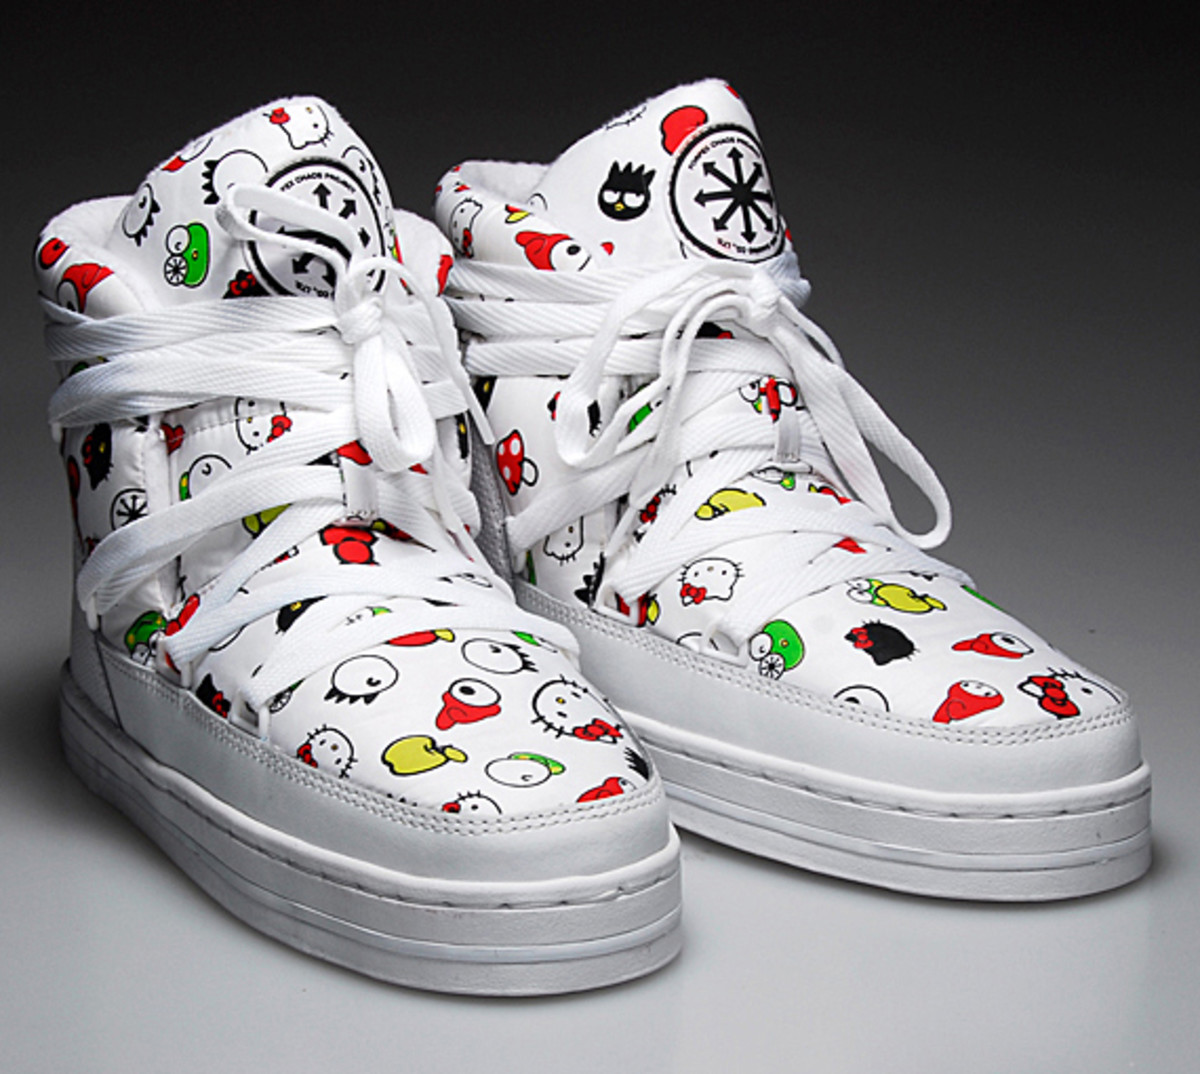 forfex-sanrio-50th-anniversary-sneakers-00